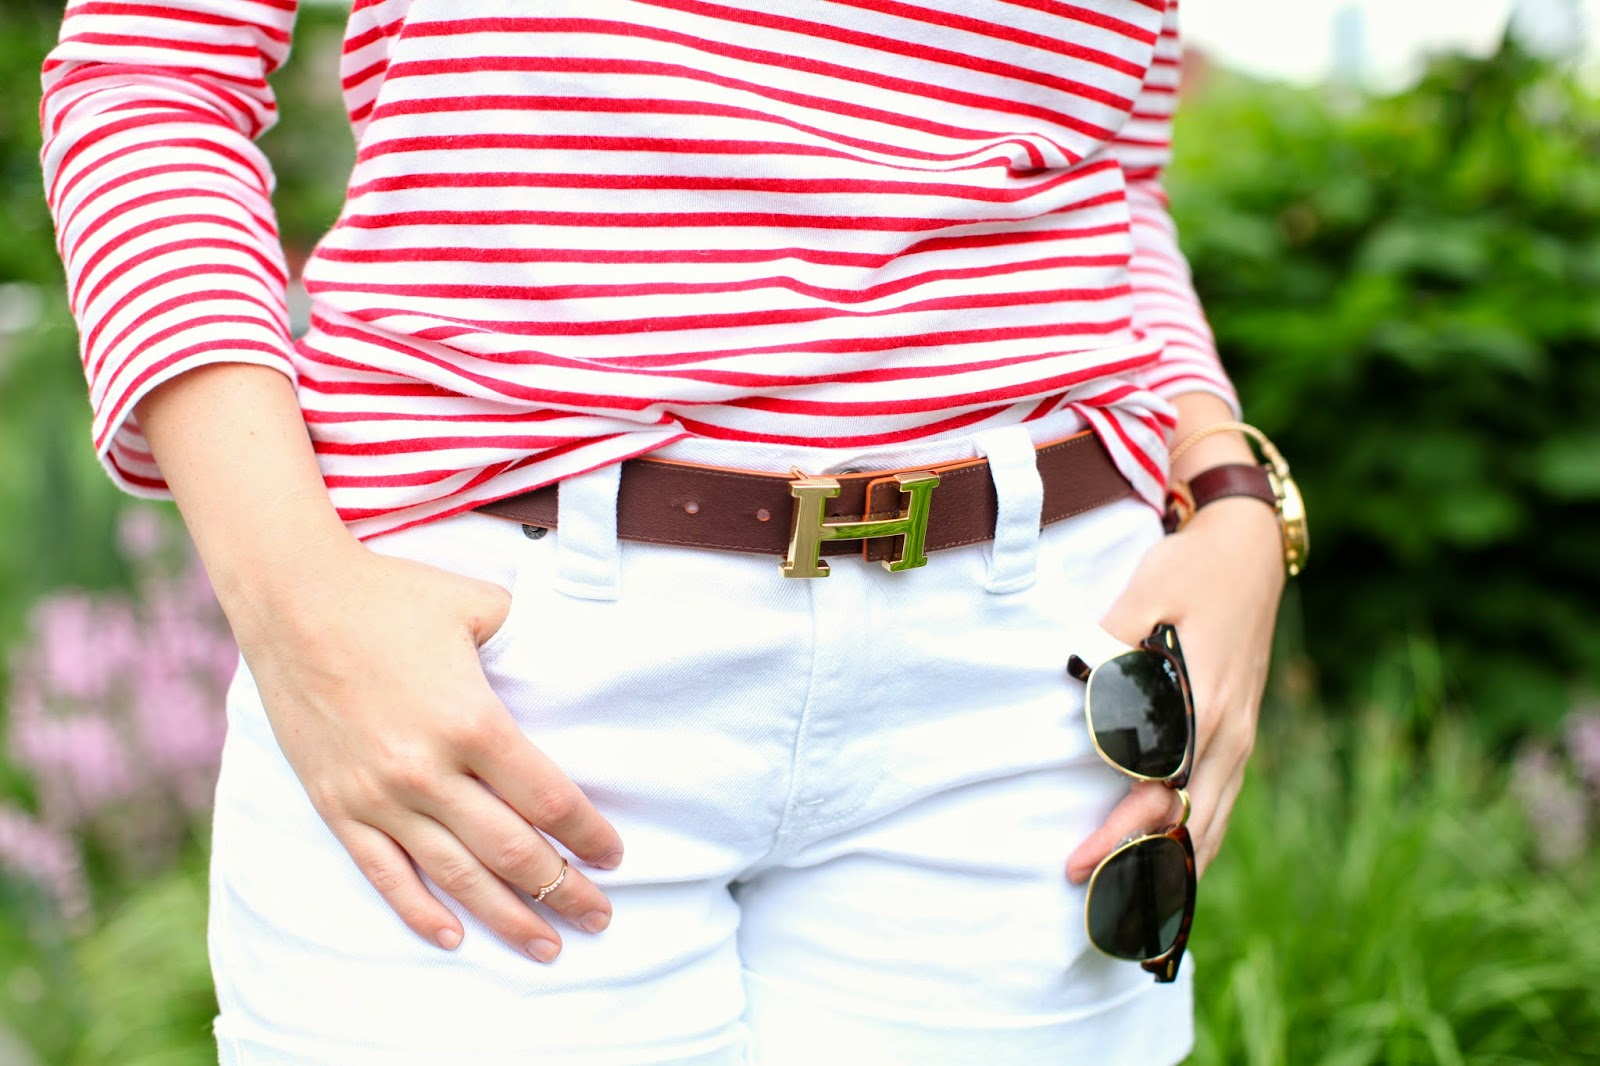 cheap hermes belt, cwonder belt, preppy belt